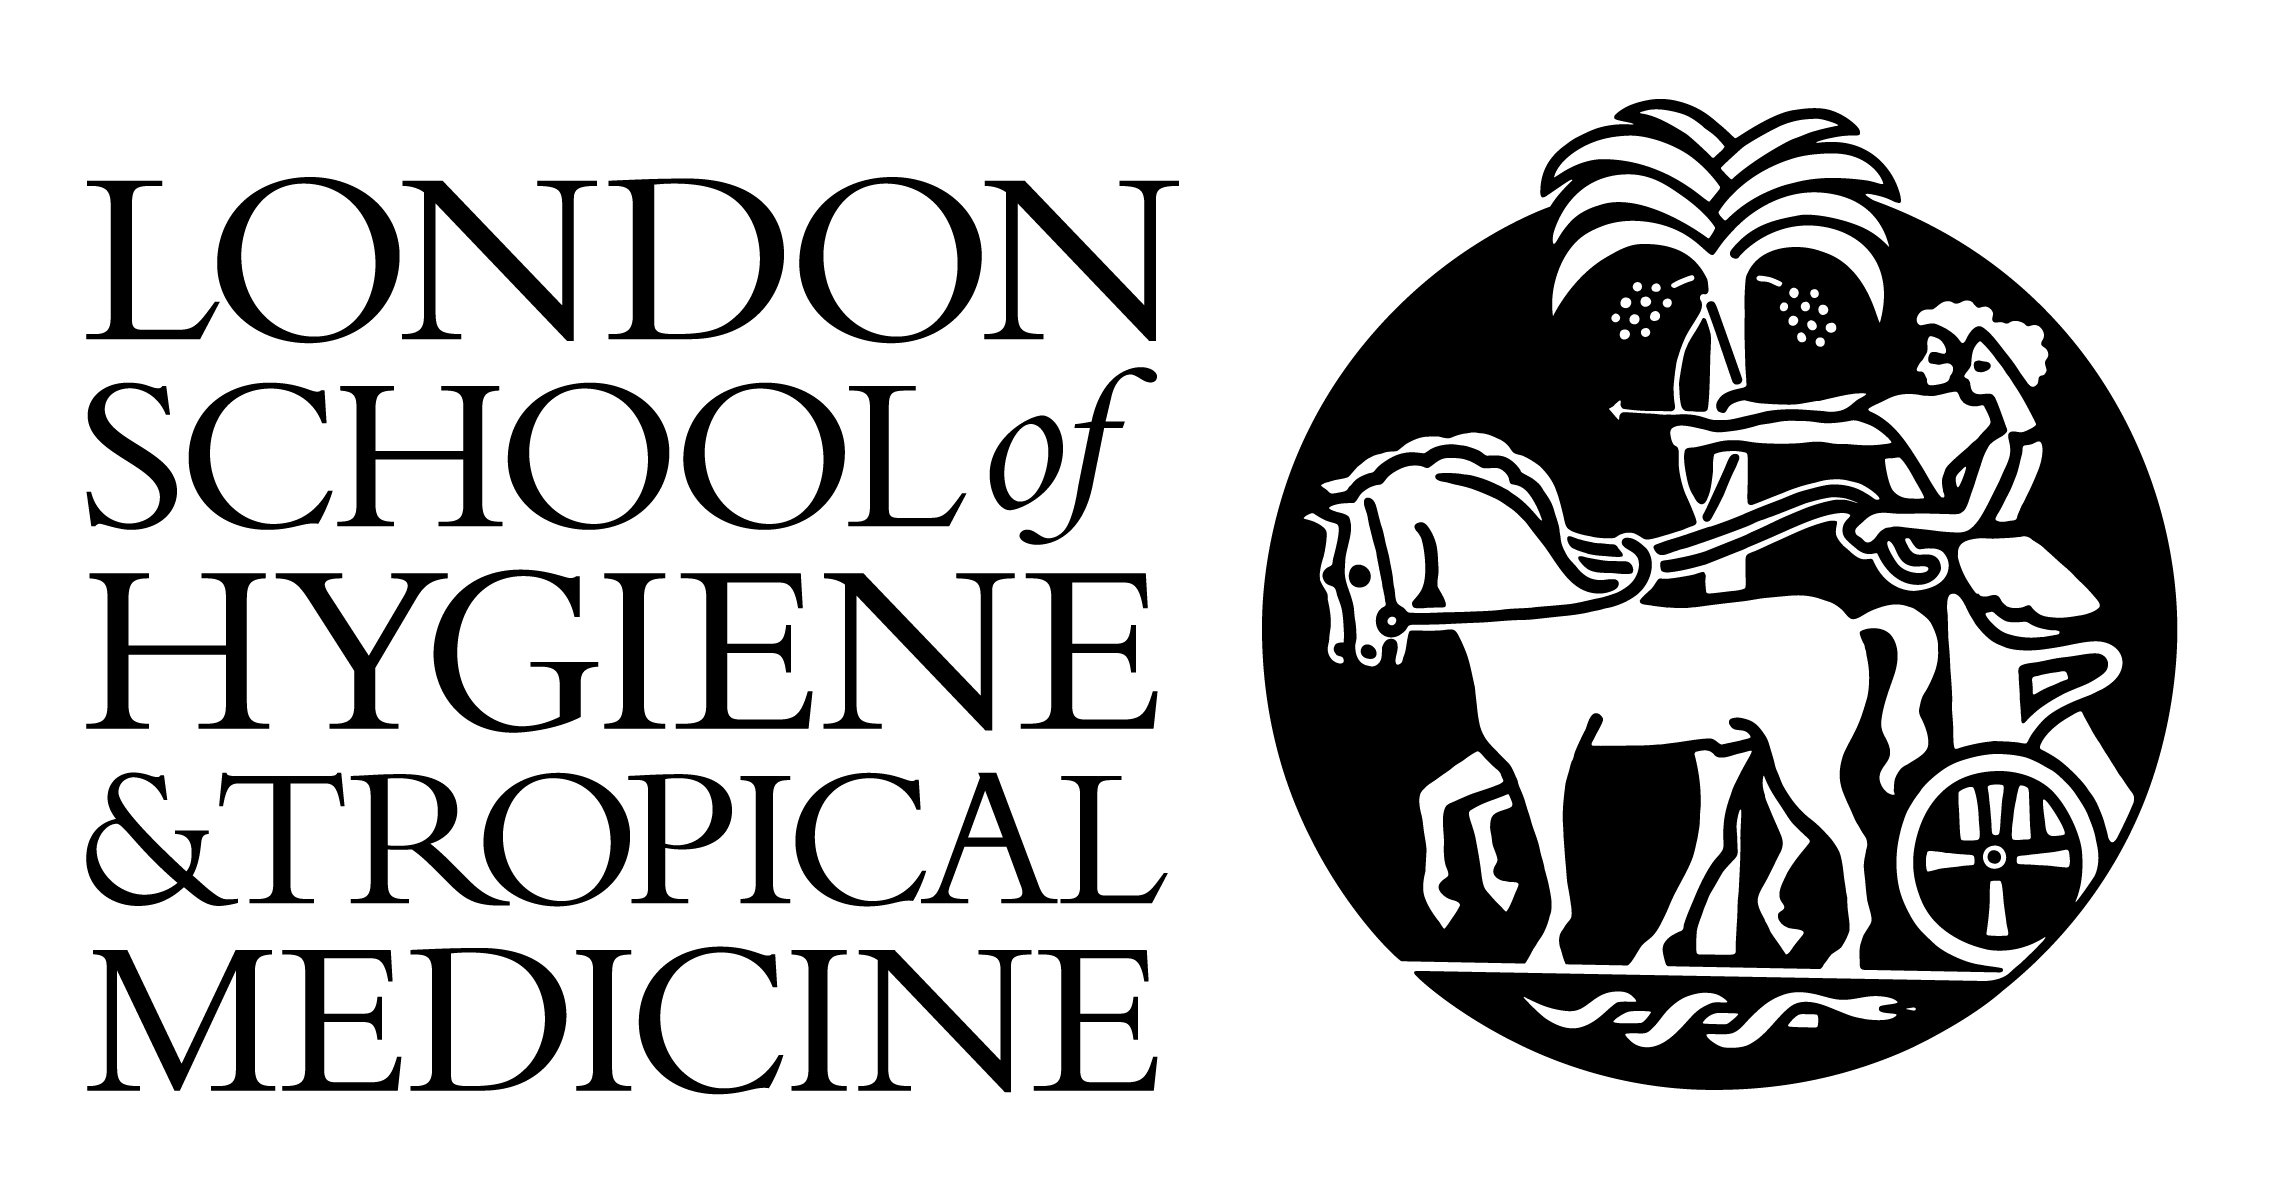 London school-logo.jpg